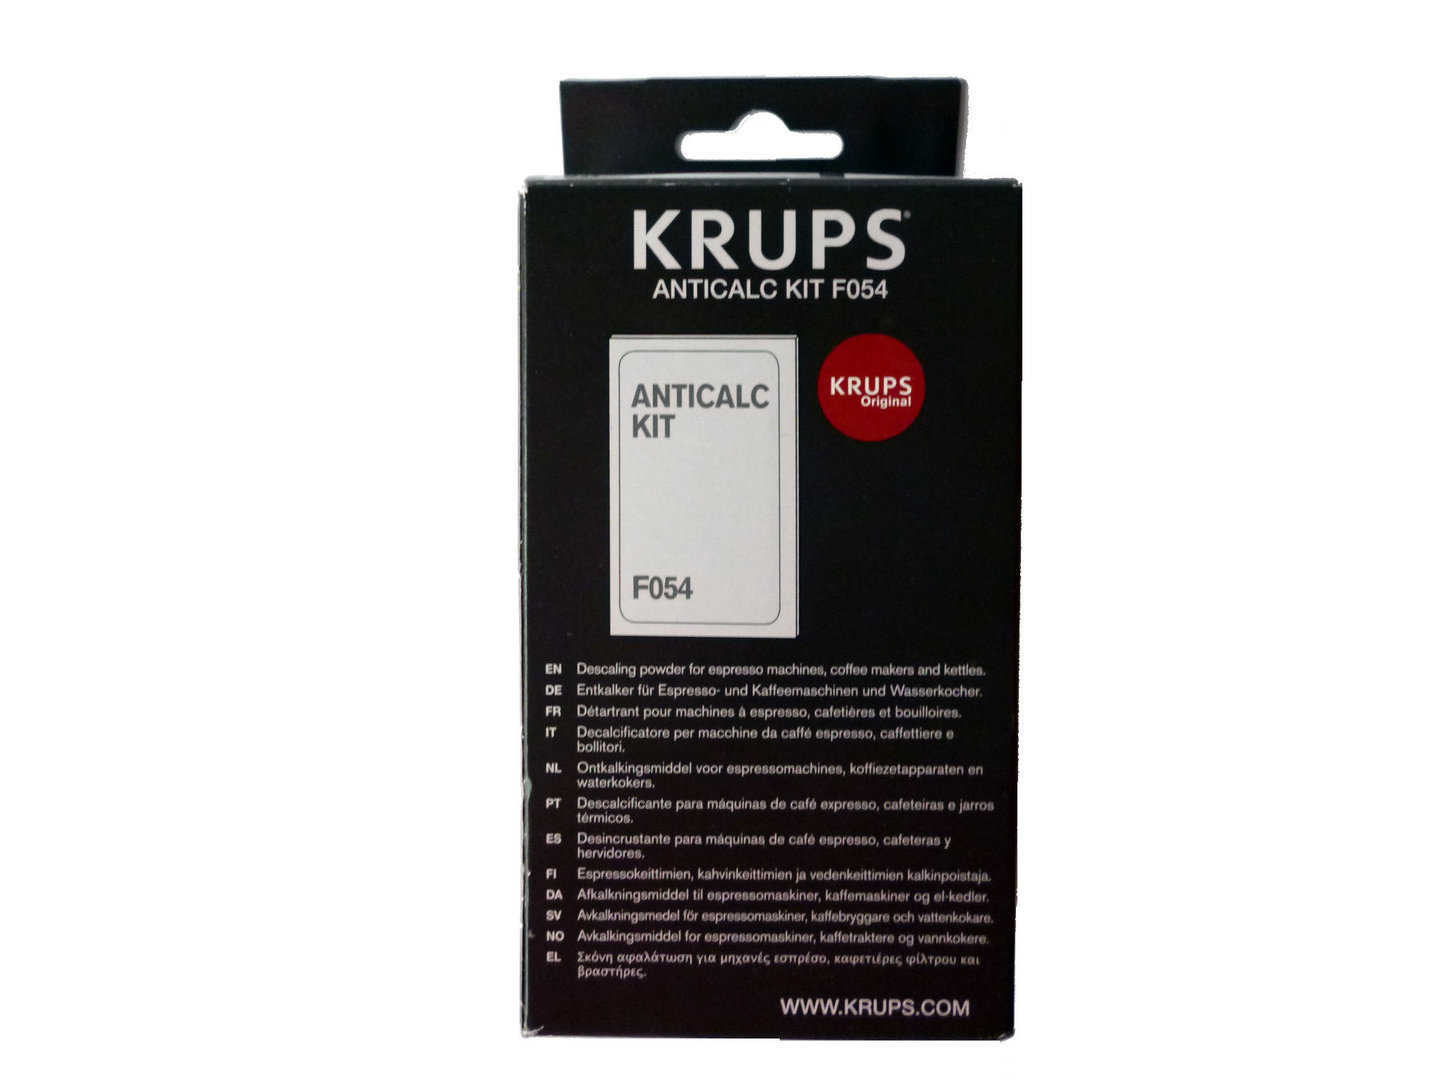 krups anticalc kit f054 instructions dolce gusto